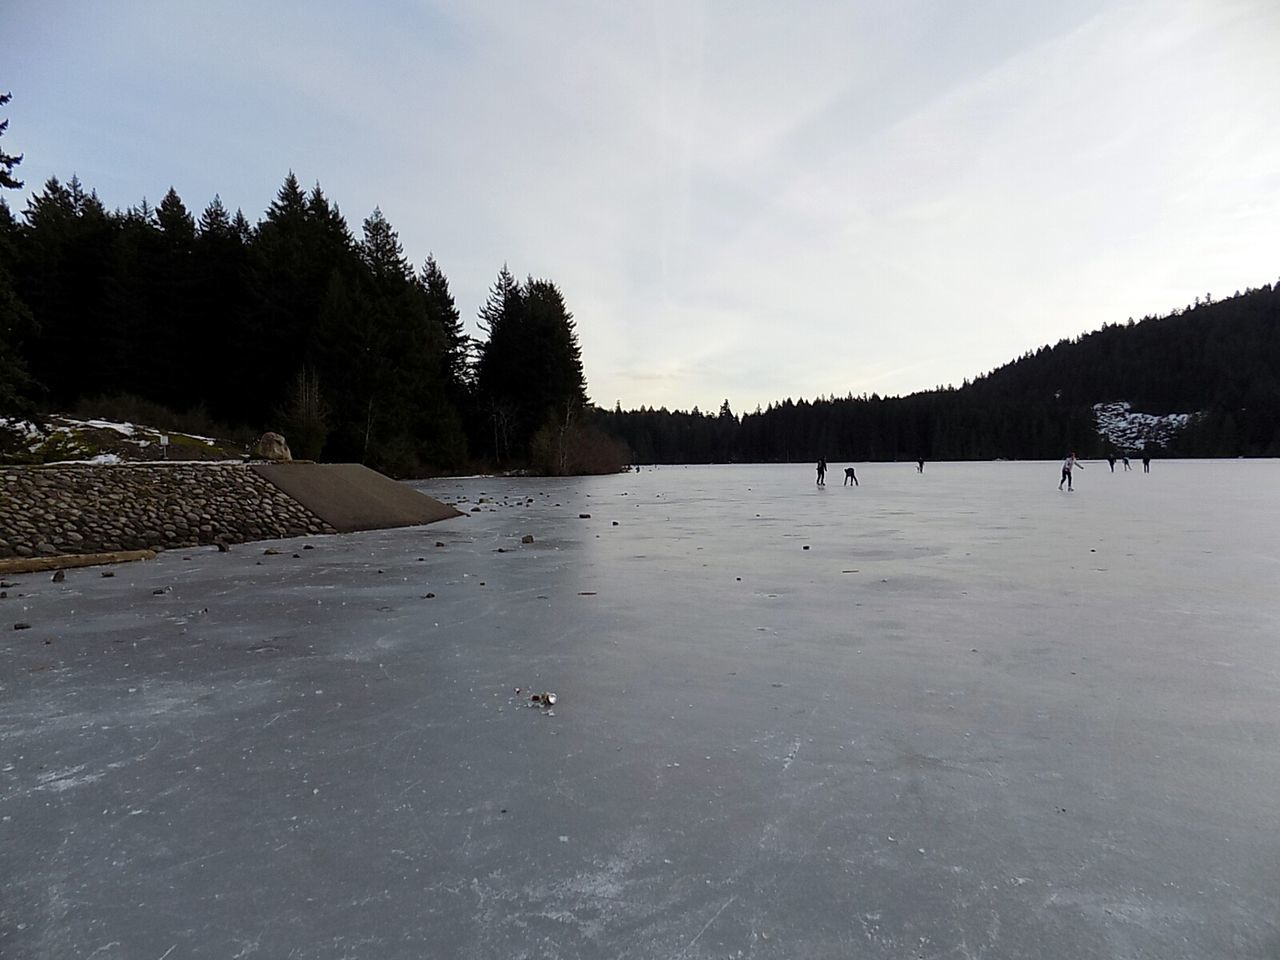 Tree Water Sky Nature Cold Temperature Outdoors No People Landscape Natural Parkland Day Skating ✌ 2017 Year Vancouver Island Canada Frozen Lake Warm Clothing Ice Hockey Winter Sport